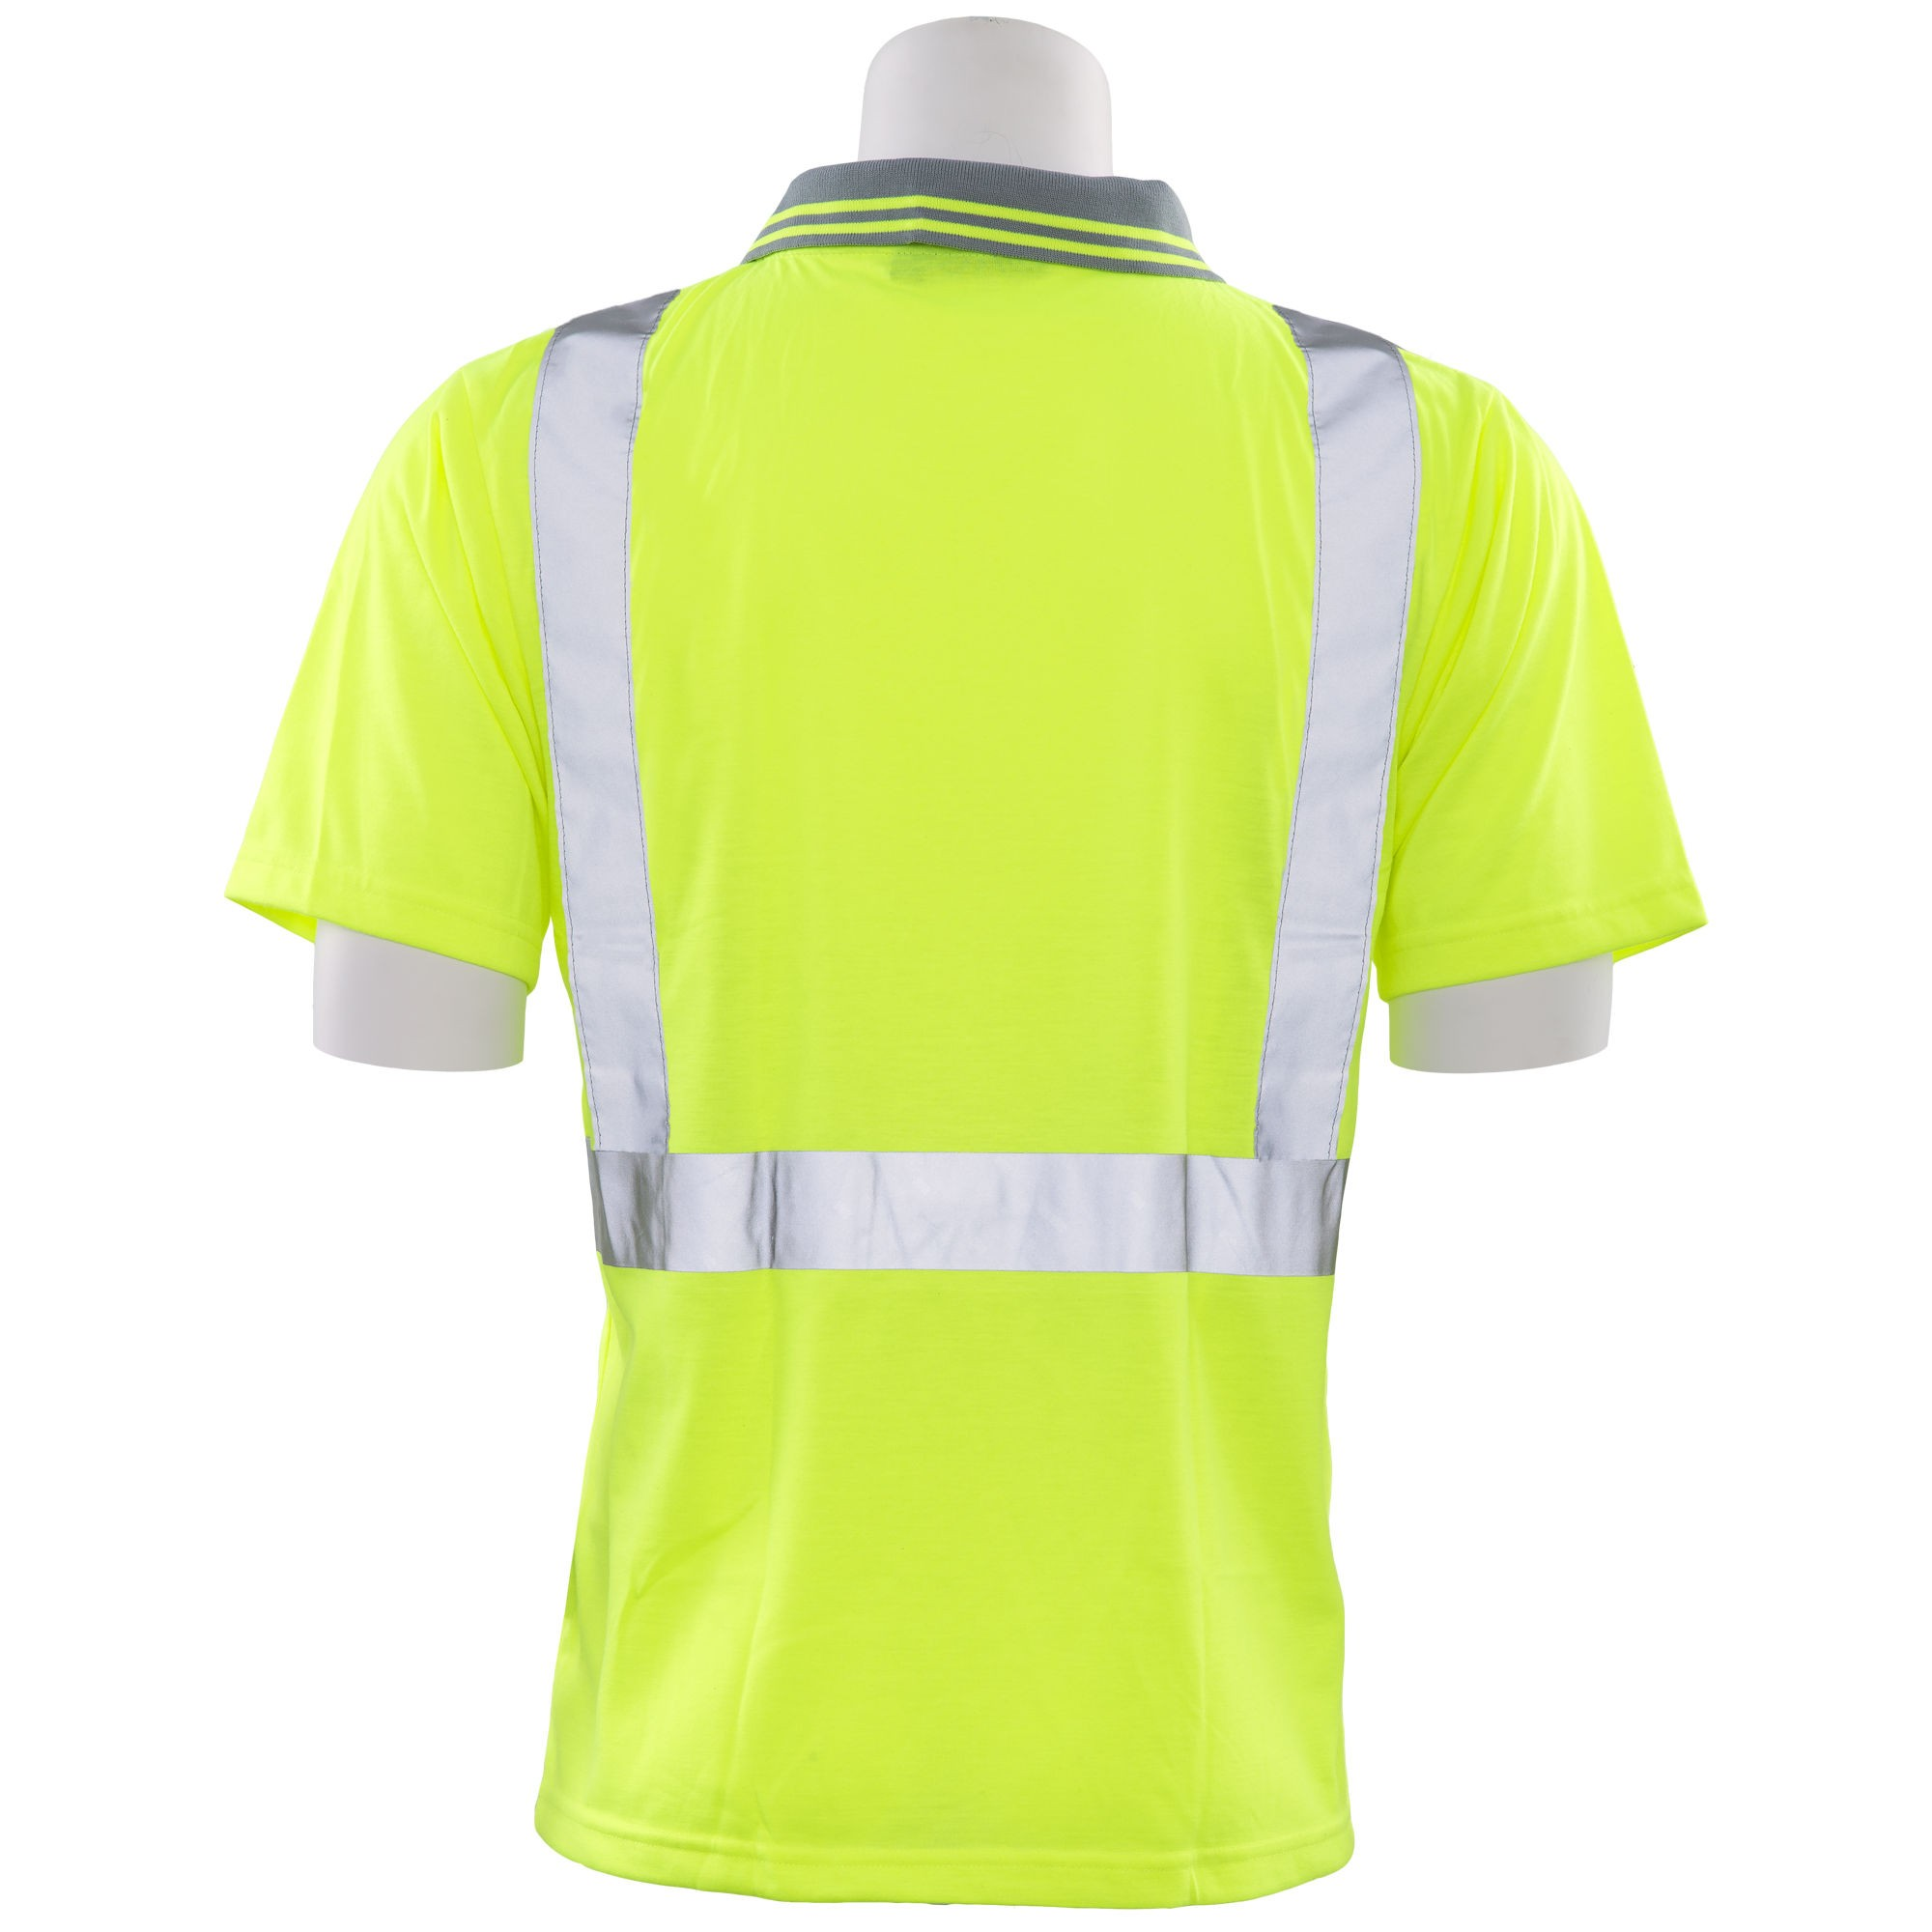 Erb S369 Type R Class 2 Safety Polo Shirt Yellowlime Fullsource